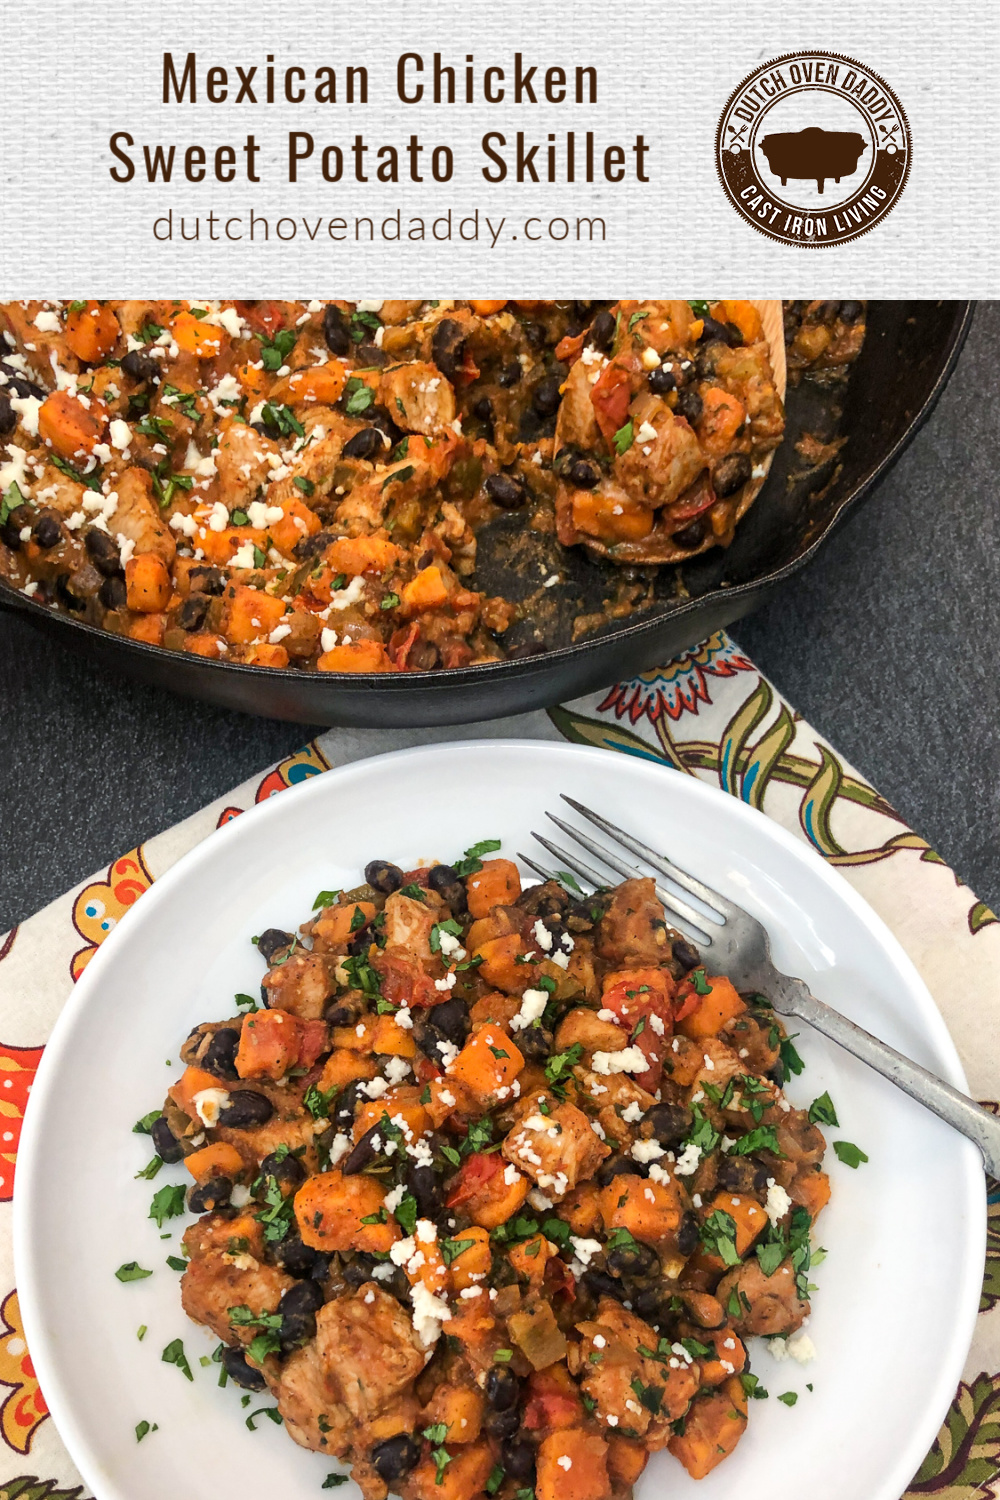 Serving of Mexican Chicken and Sweet Potato skillet on a white plate with a skillet in the background.